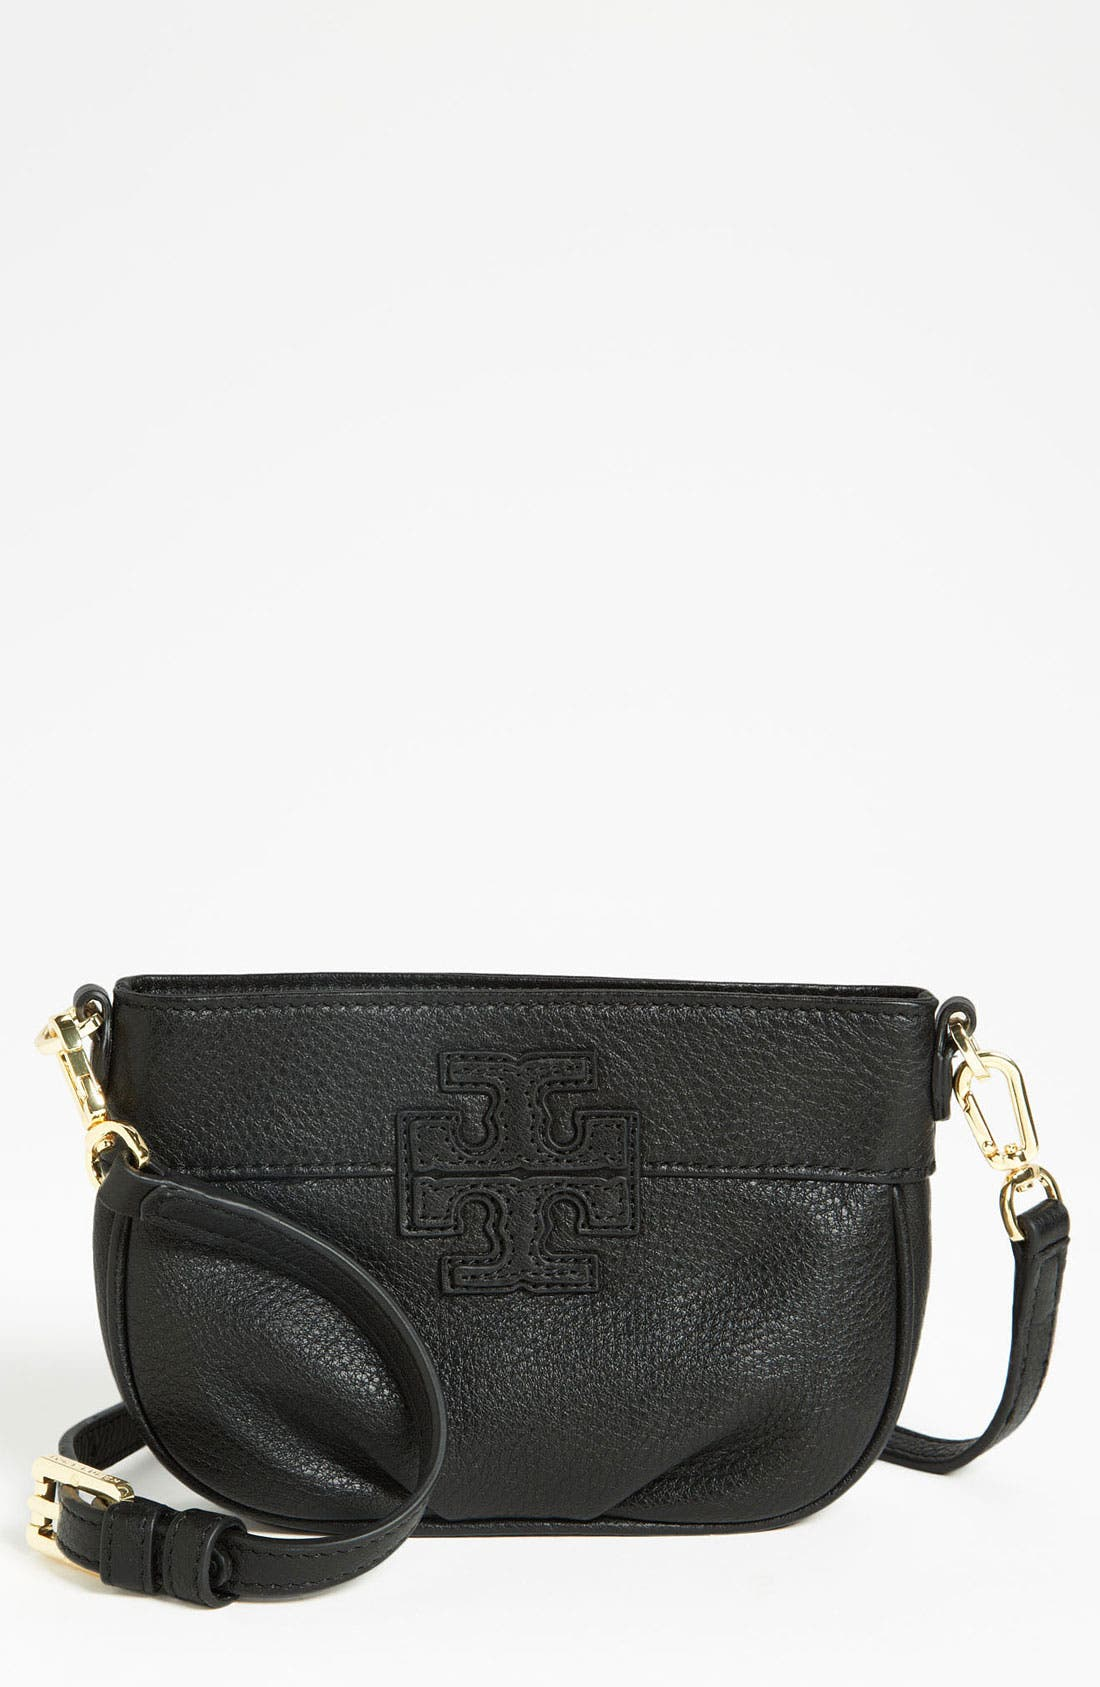 Alternate Image 1 Selected - Tory Burch 'Stacked T' Leather Crossbody Bag